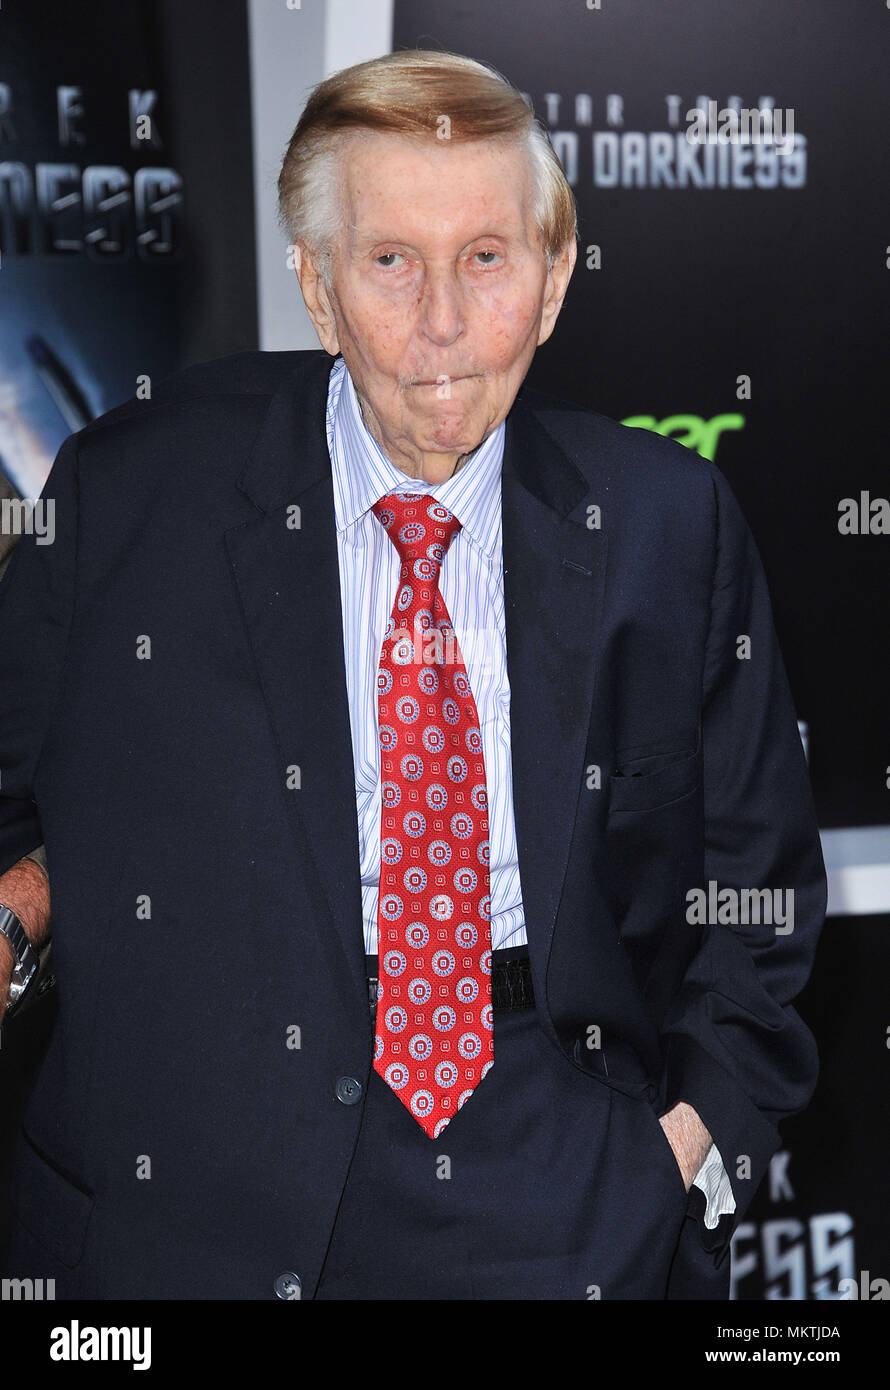 Sumner Redstone  arriving at Star Trek Into Darkness Premiere at the Dolby Theatre in Los Angeles.Sumner Redstone  Red Carpet Event, Vertical, USA, Film Industry, Celebrities,  Photography, Bestof, Arts Culture and Entertainment, Topix Celebrities fashion /  Vertical, Best of, Event in Hollywood Life - California,  Red Carpet and backstage, USA, Film Industry, Celebrities,  movie celebrities, TV celebrities, Music celebrities, Photography, Bestof, Arts Culture and Entertainment,  Topix, headshot, vertical, one person,, from the year , 2013, inquiry tsuni@Gamma-USA.com - Stock Image